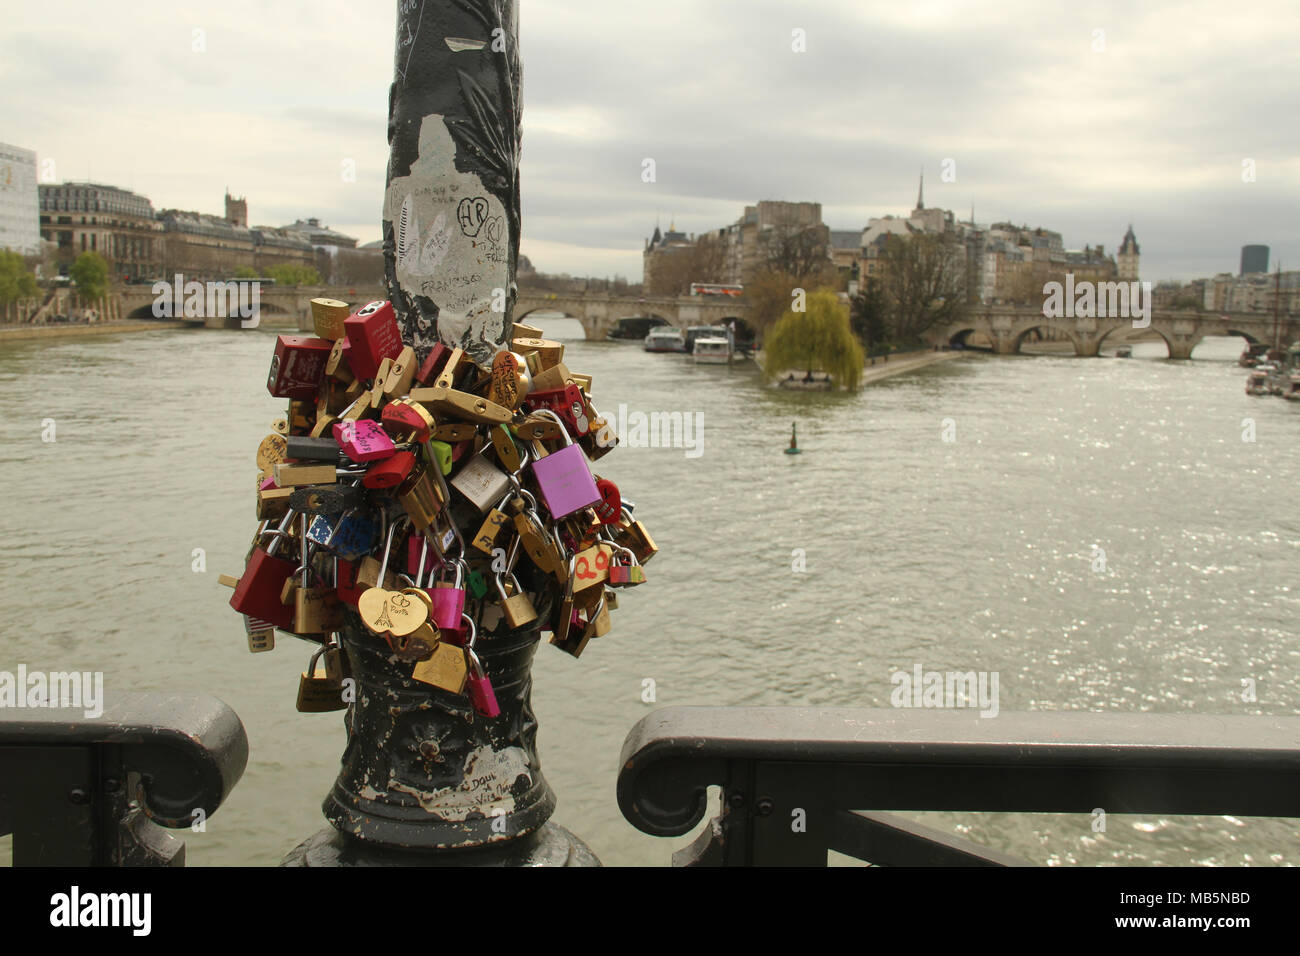 Paris, France -  03 April, 2018. Padlocks on a pole on the Pont des Arts bridge on 03 April 2018, with the river Seine seen on the background. The first Iron bridge built in France, had its railings replaced with glass panels after they collapsed under the weight on the metal padlocks. General view of Paris, France. @ David Mbiyu/Alamy Live News - Stock Image